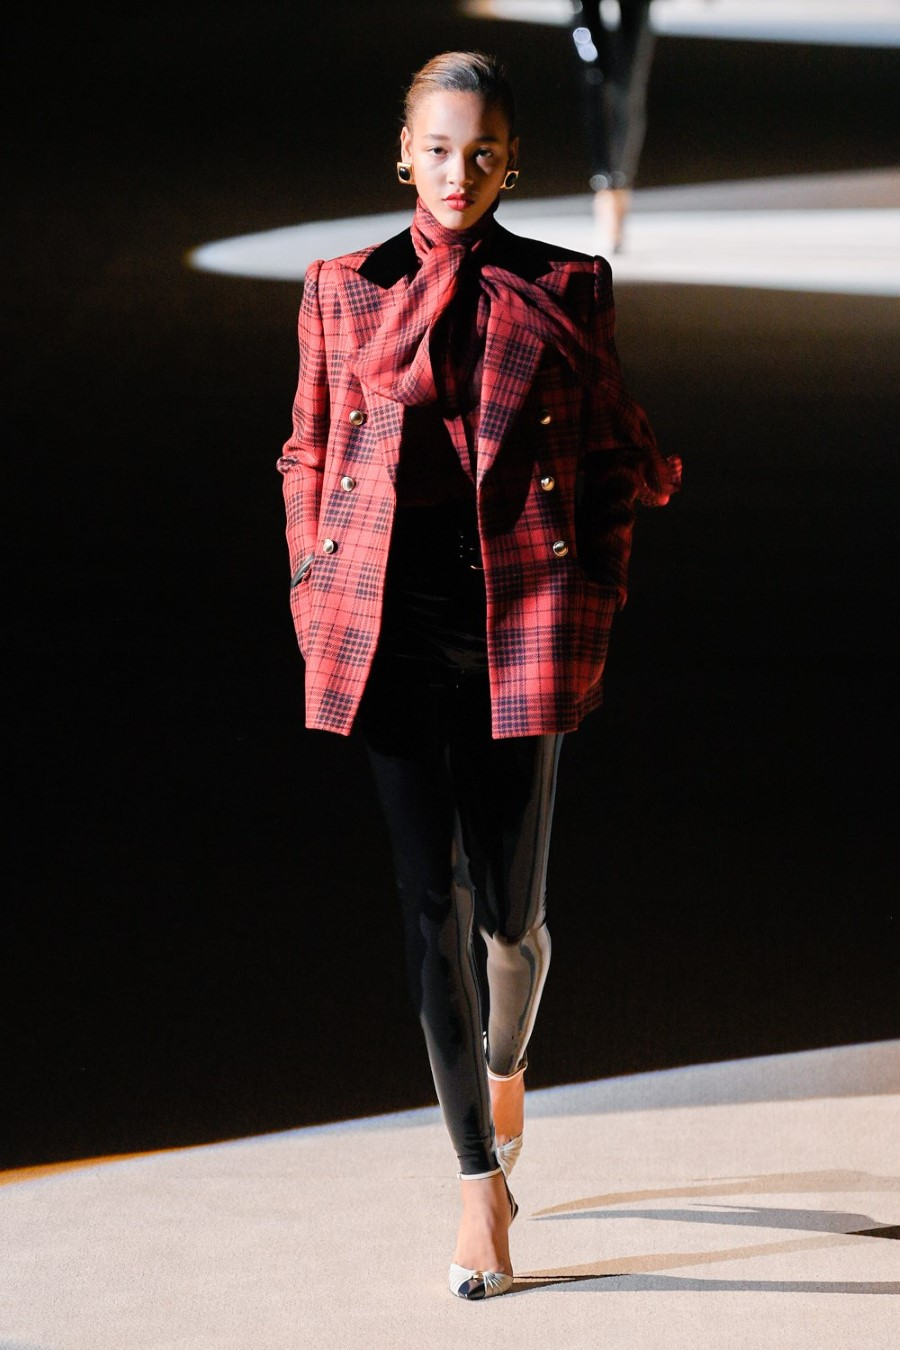 Saint Laurent - Fall Winter 2020 - Paris Fashion Week